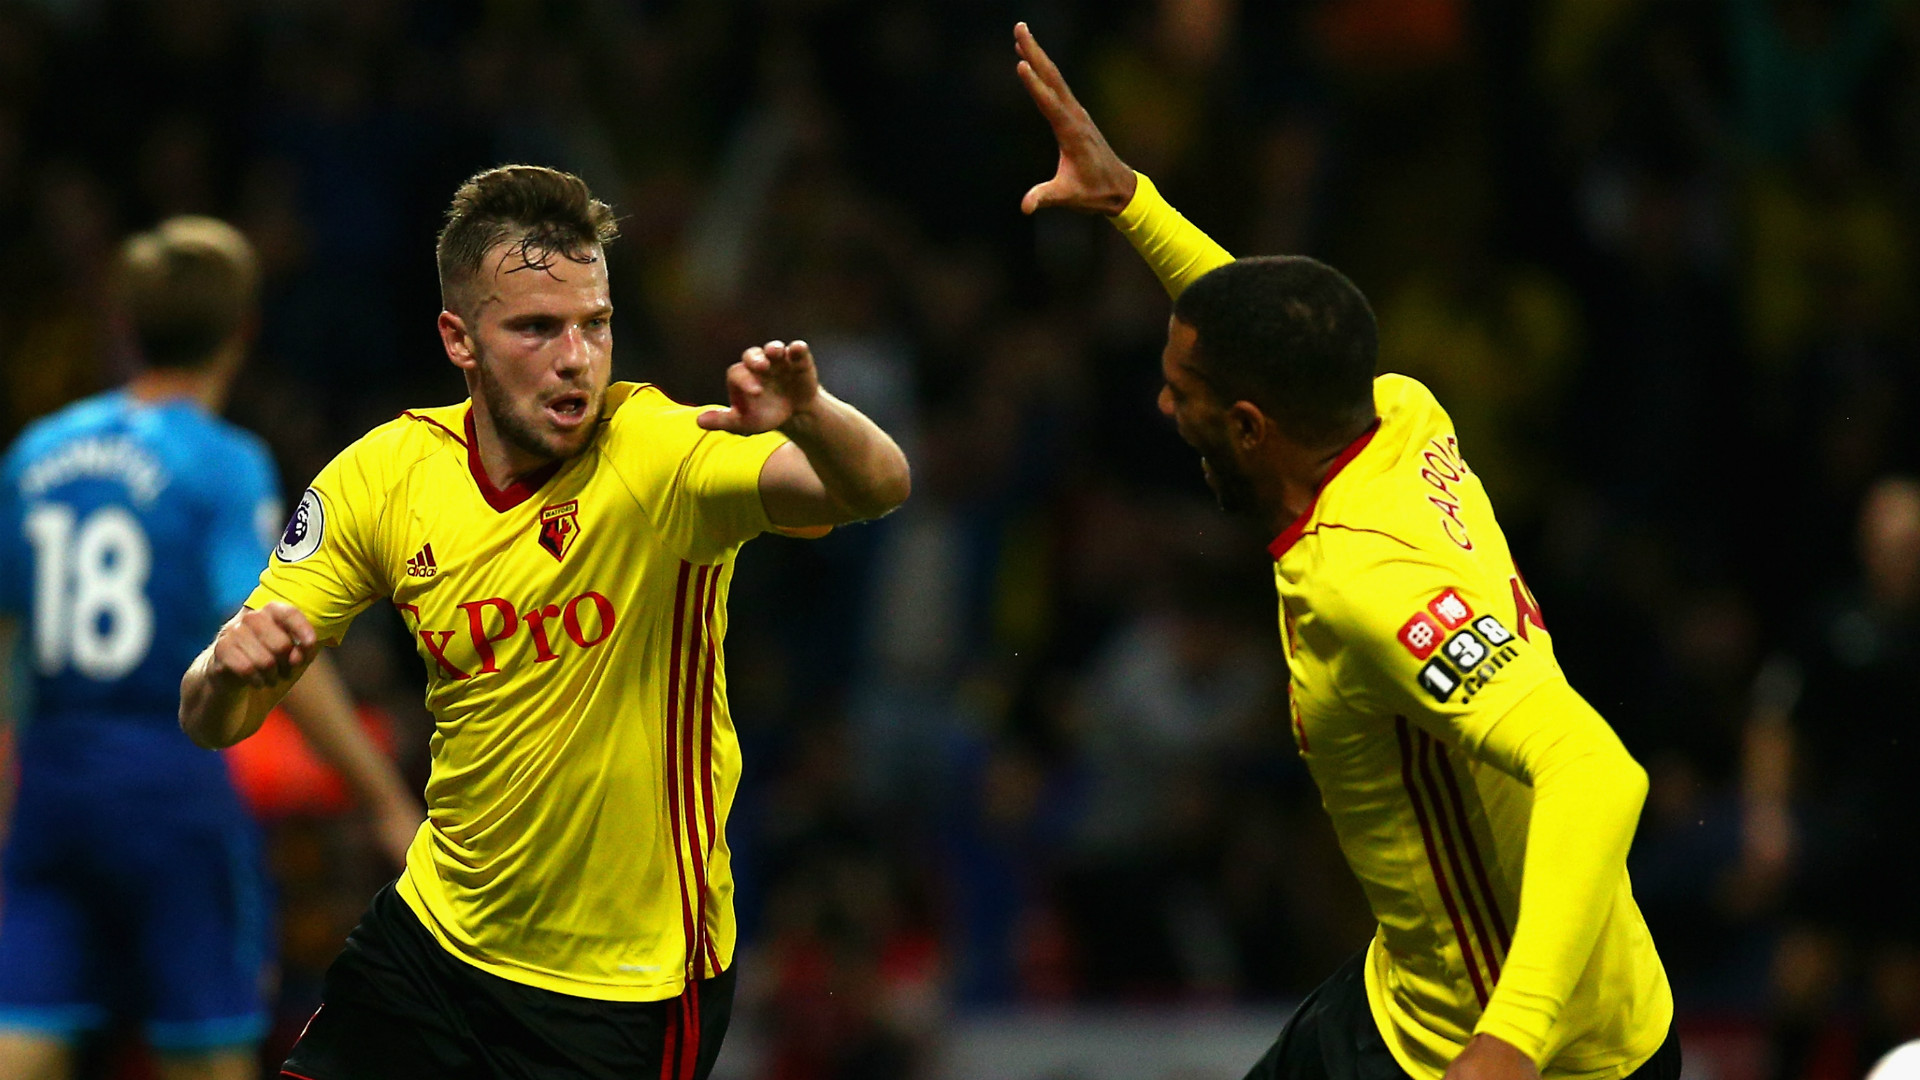 Watford vs. Arsenal - Football Match Report